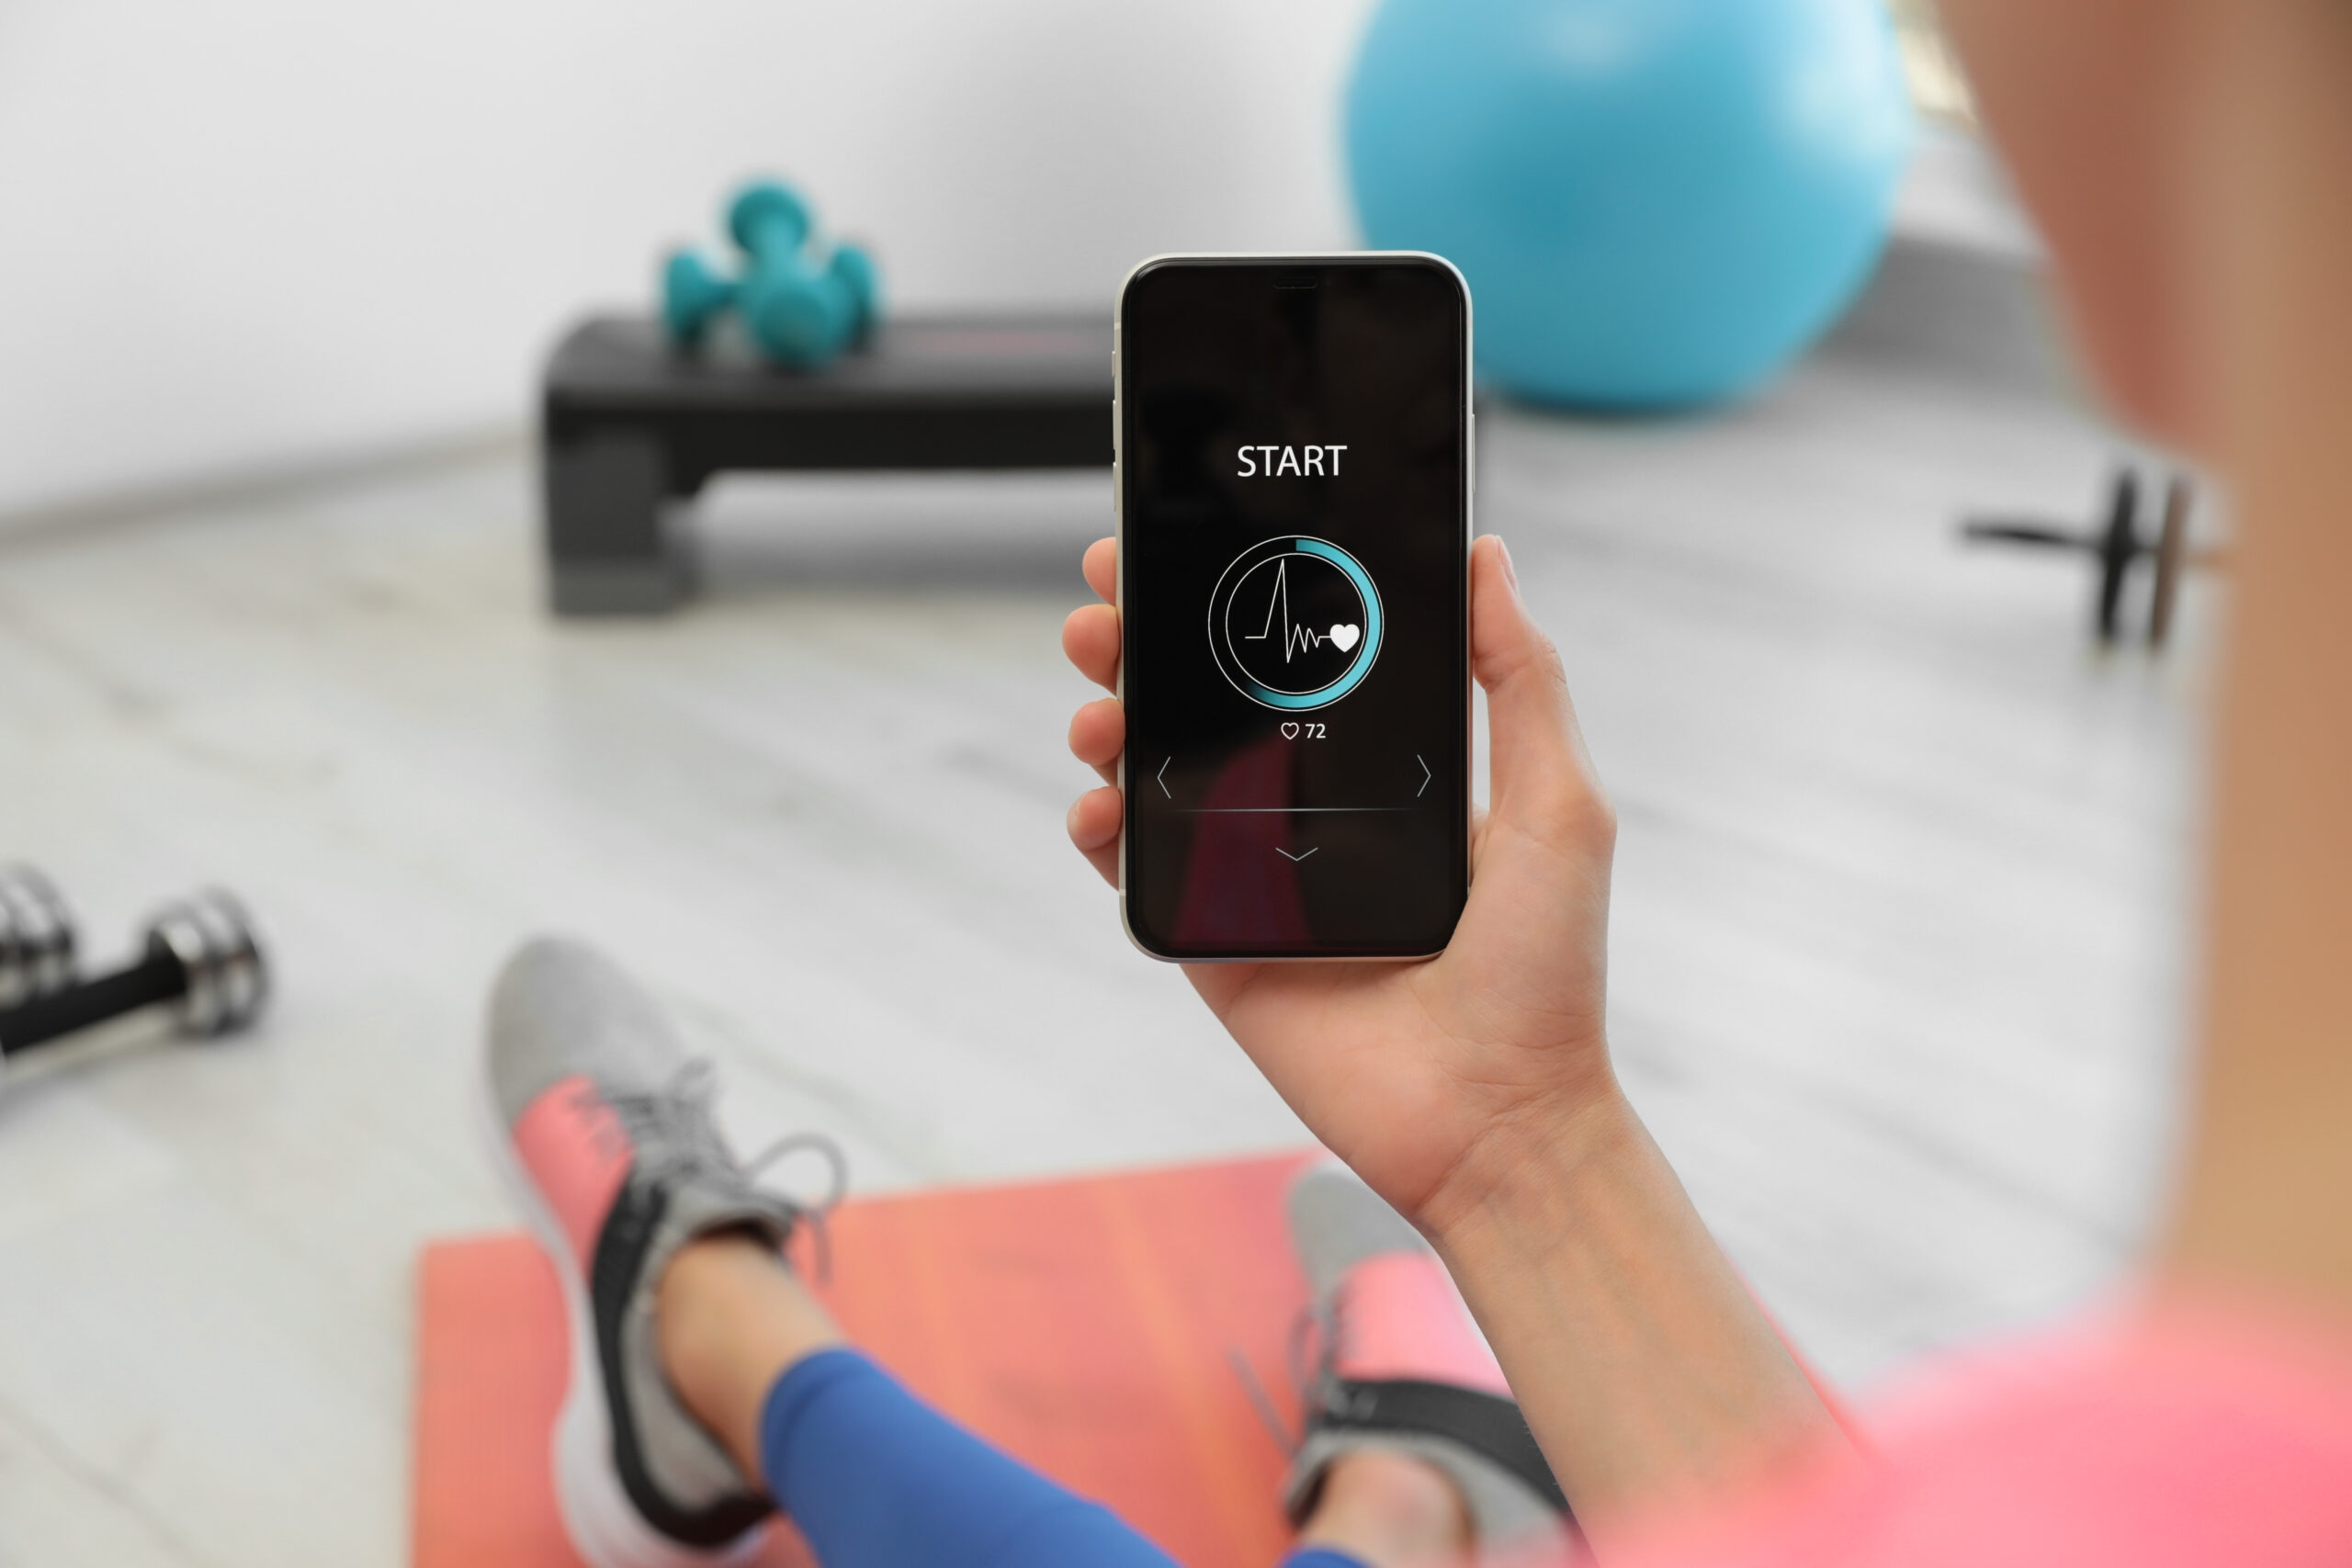 GPS tracking for fitness